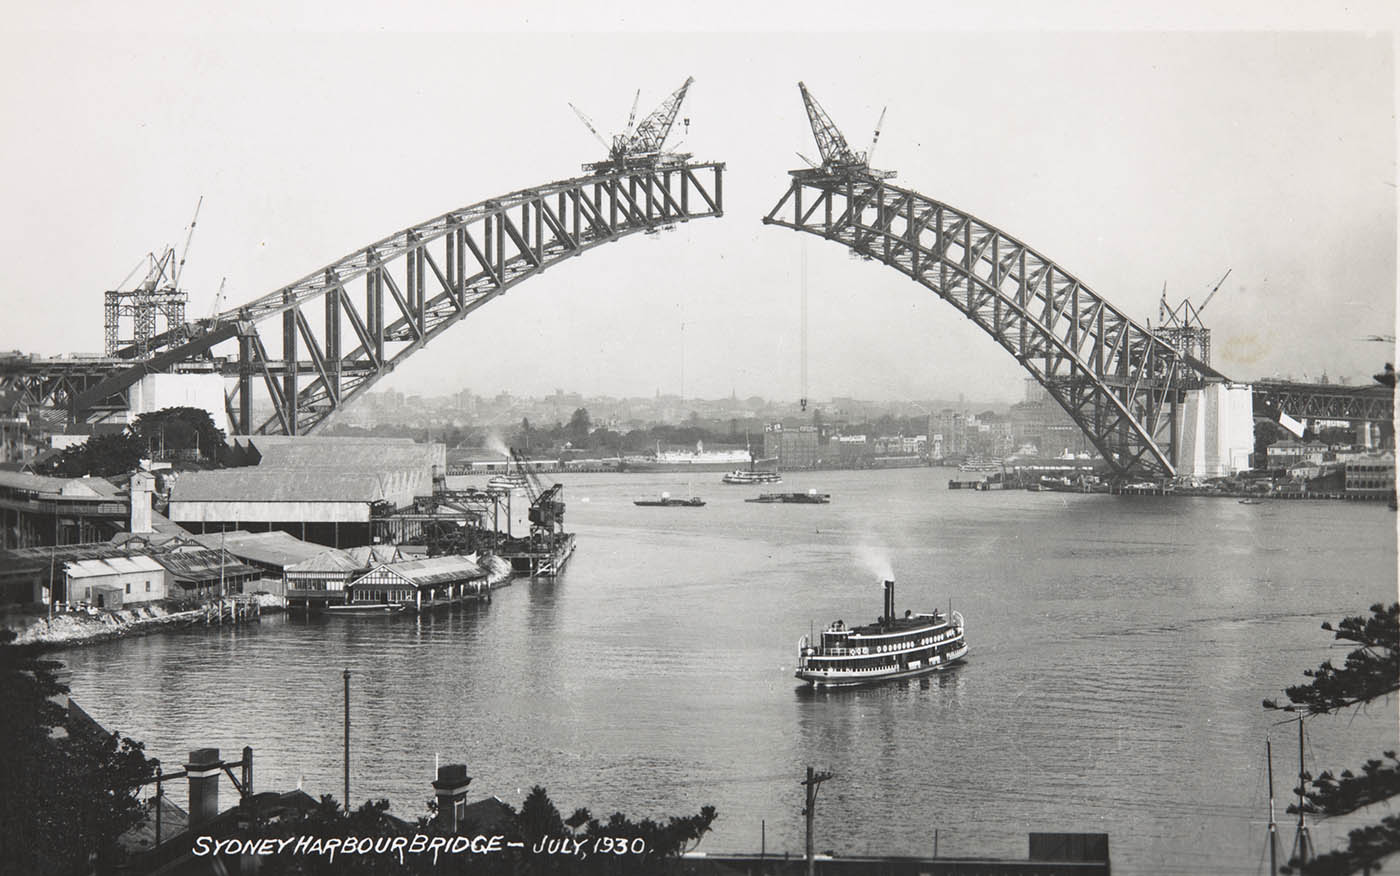 Photo taken from the north shore showing the two sides of the arch under construction. They have yet to meet. Large cranes are perched on top of each end of the spans. A ferry can be seen in the foreground. - click to view larger image